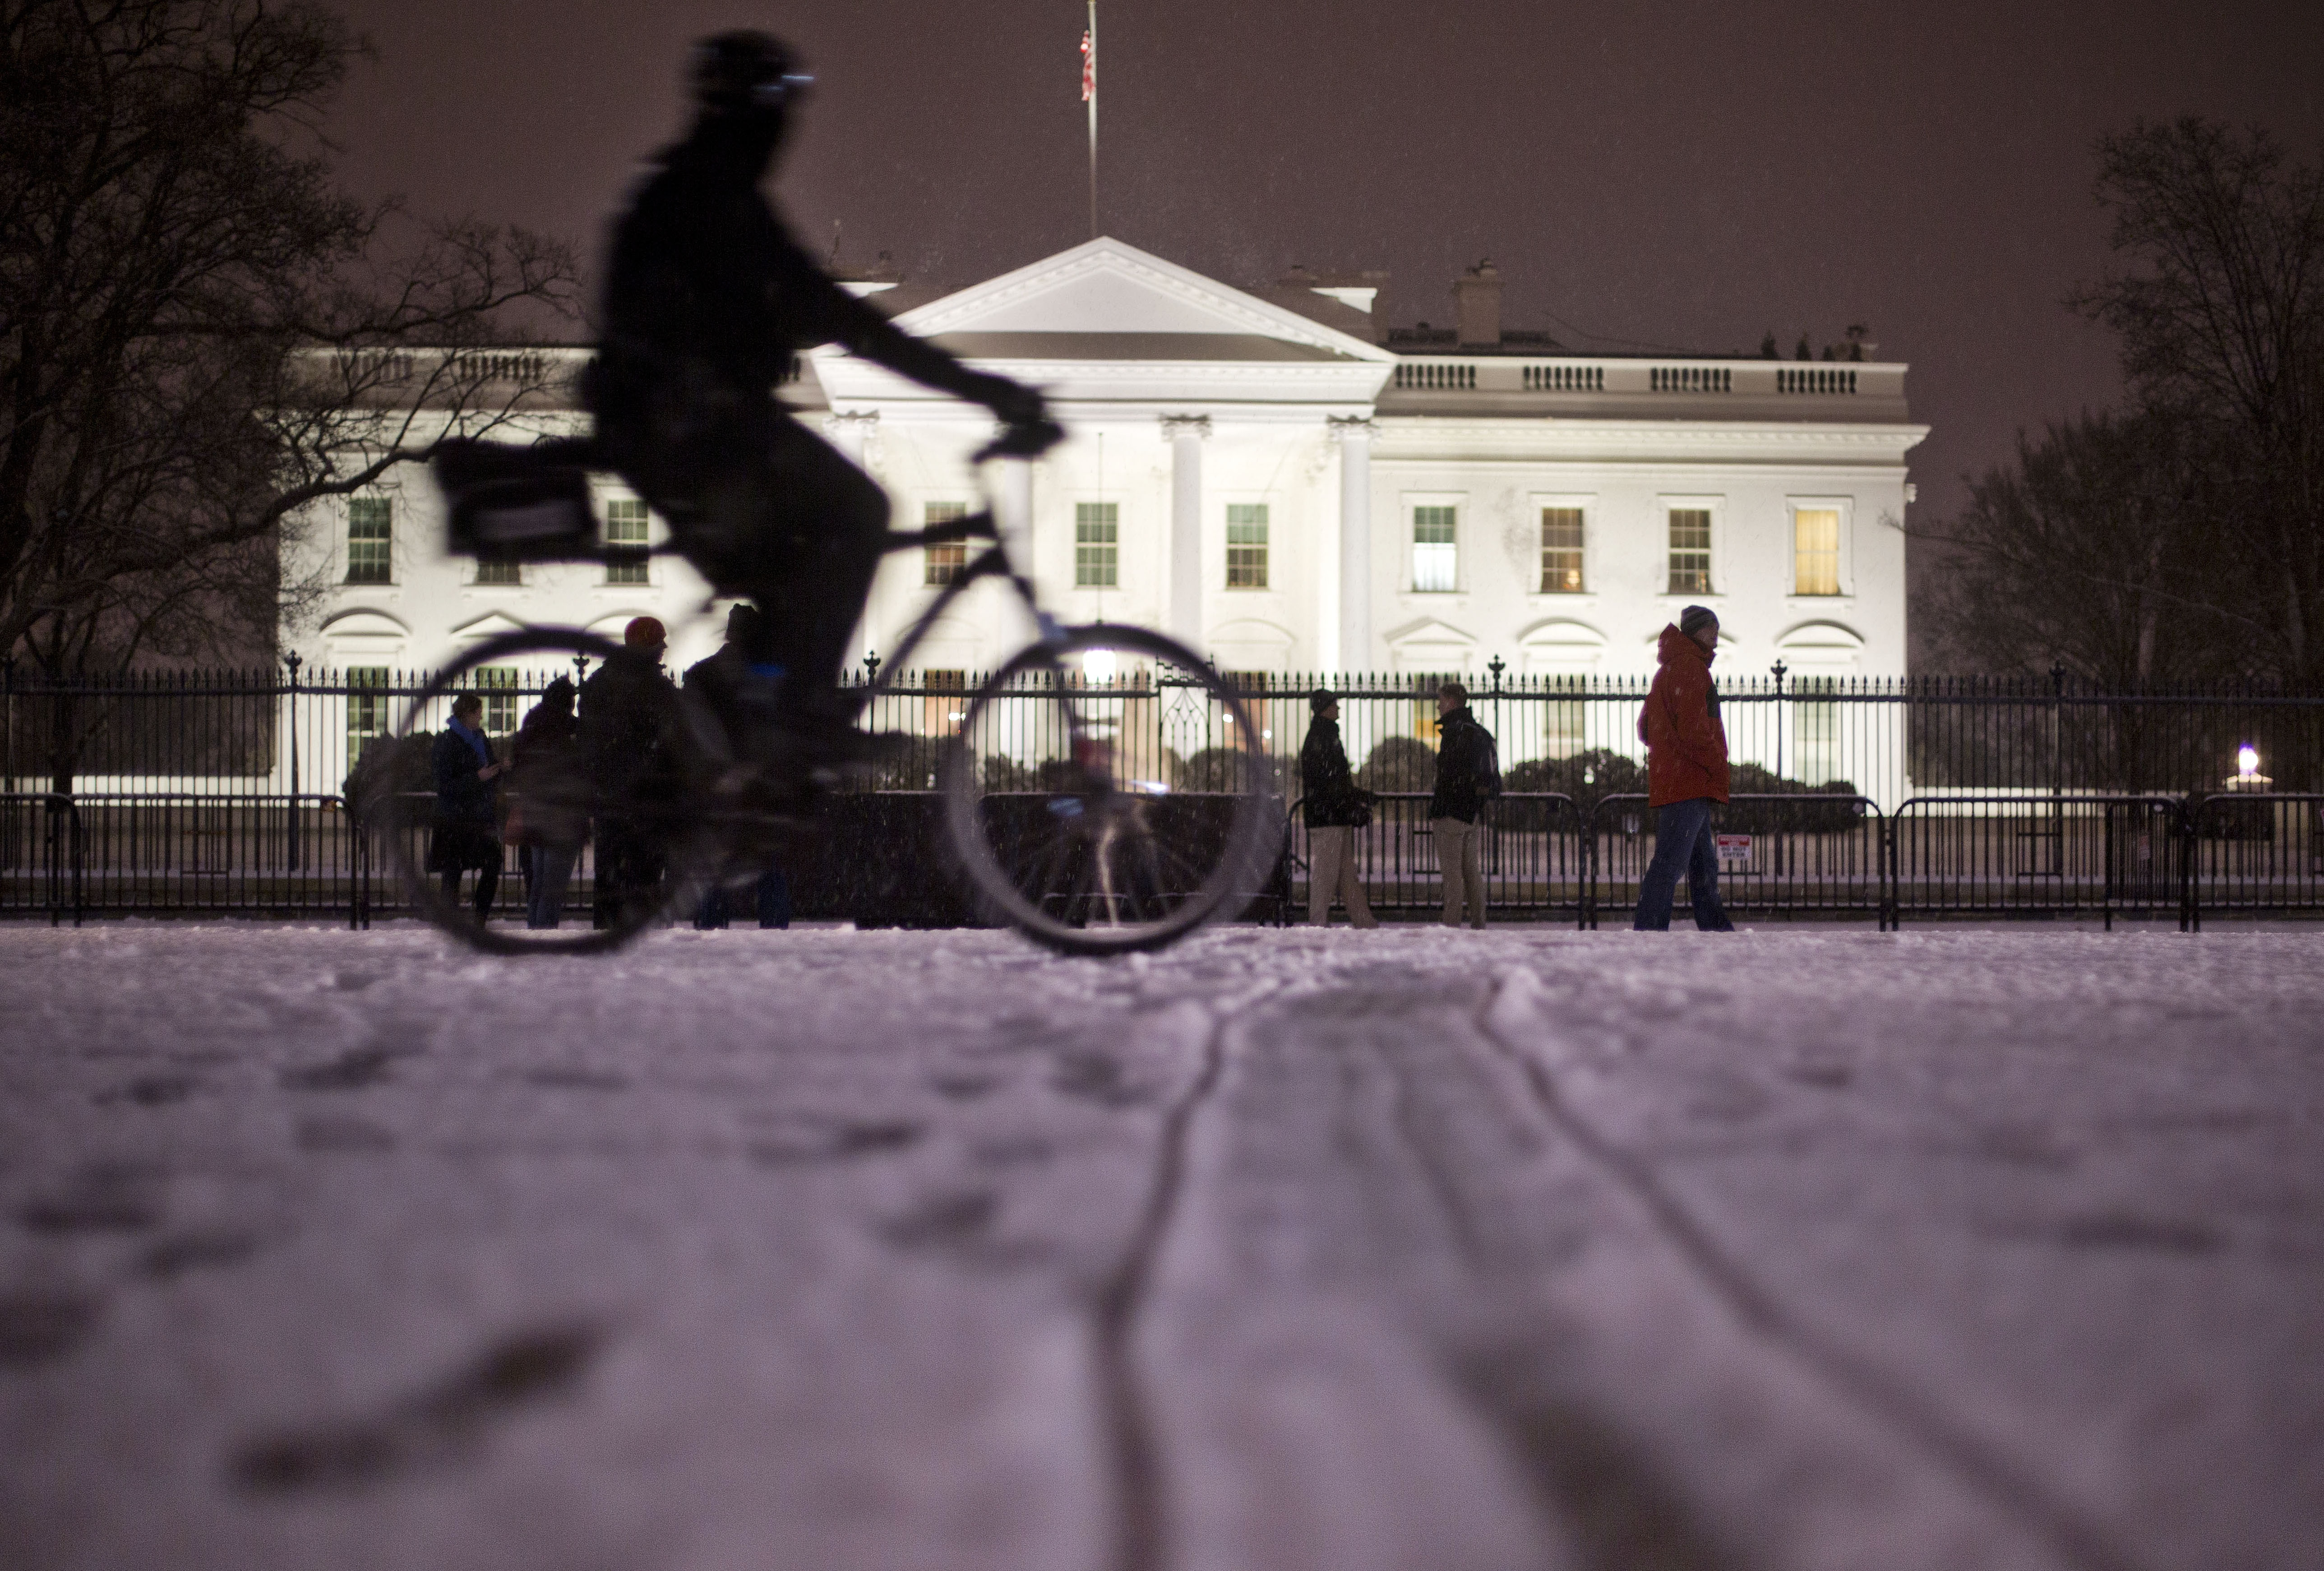 NWS issues Blizzard Warning for D.C. area Friday into Saturday